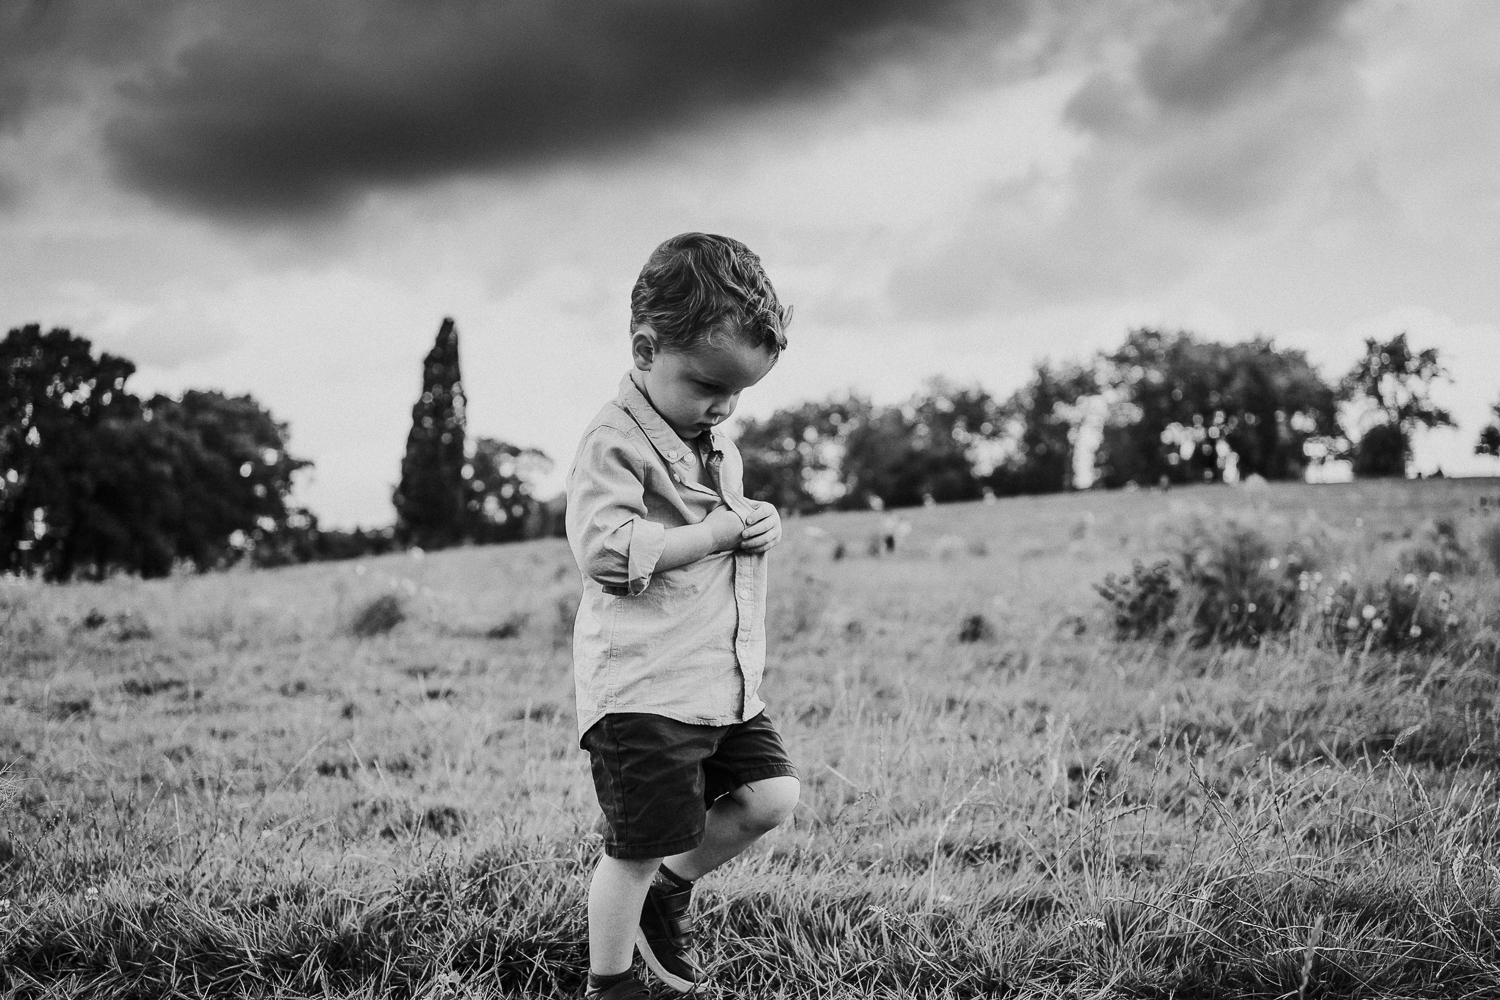 SPRING MINI PHOTO SESSIONS BOY WALKING IN GLADSTONE PARK WITH STORMY SKY BLACK AND WHITE